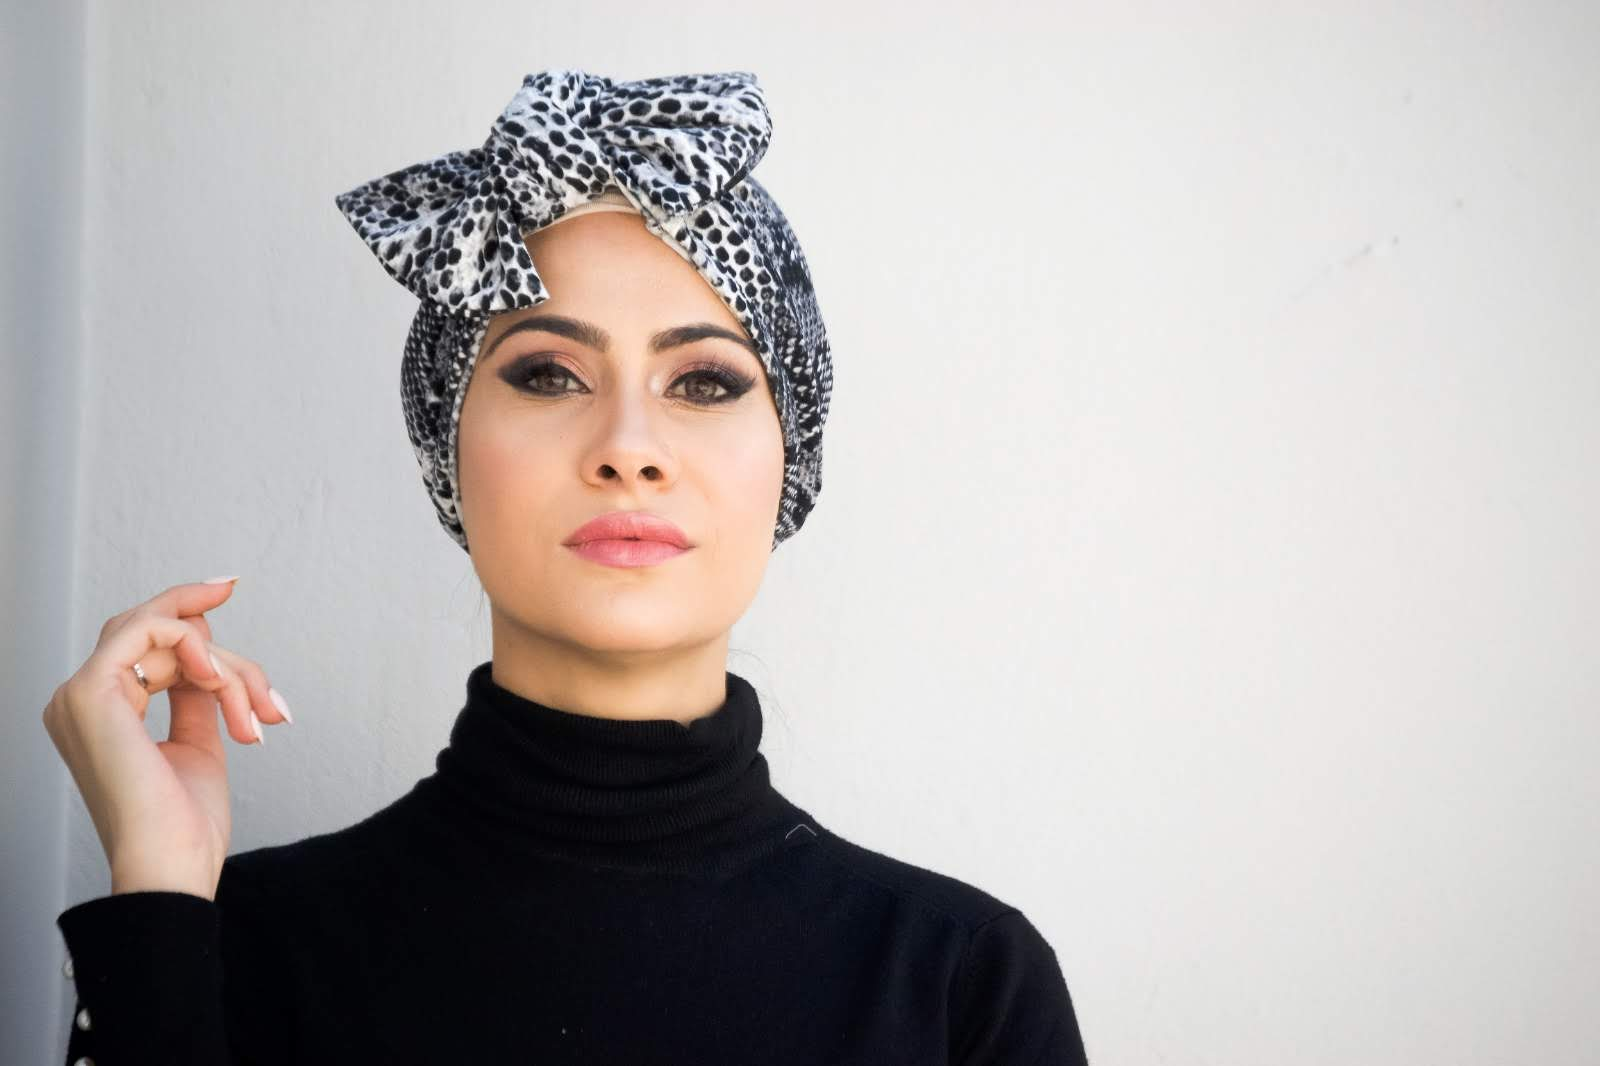 3-in-1 Printed Luxe Pull-on Turban with bow